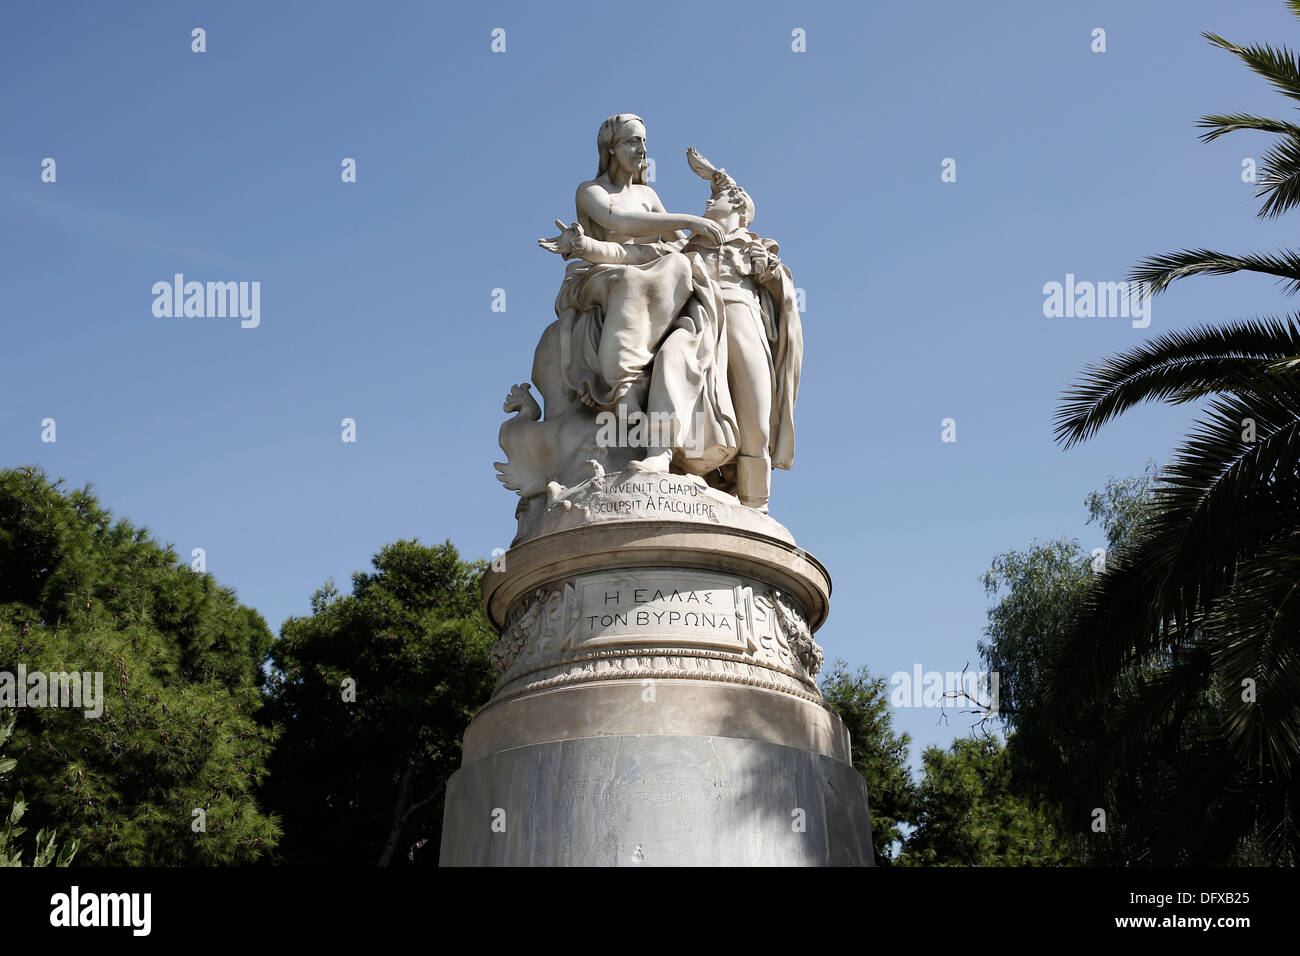 Known as the 'Statue of Byron'. This sculpture composition represents Greece crowned Lord Byron. Athens, Greece on Oct. 2013 - Stock Image